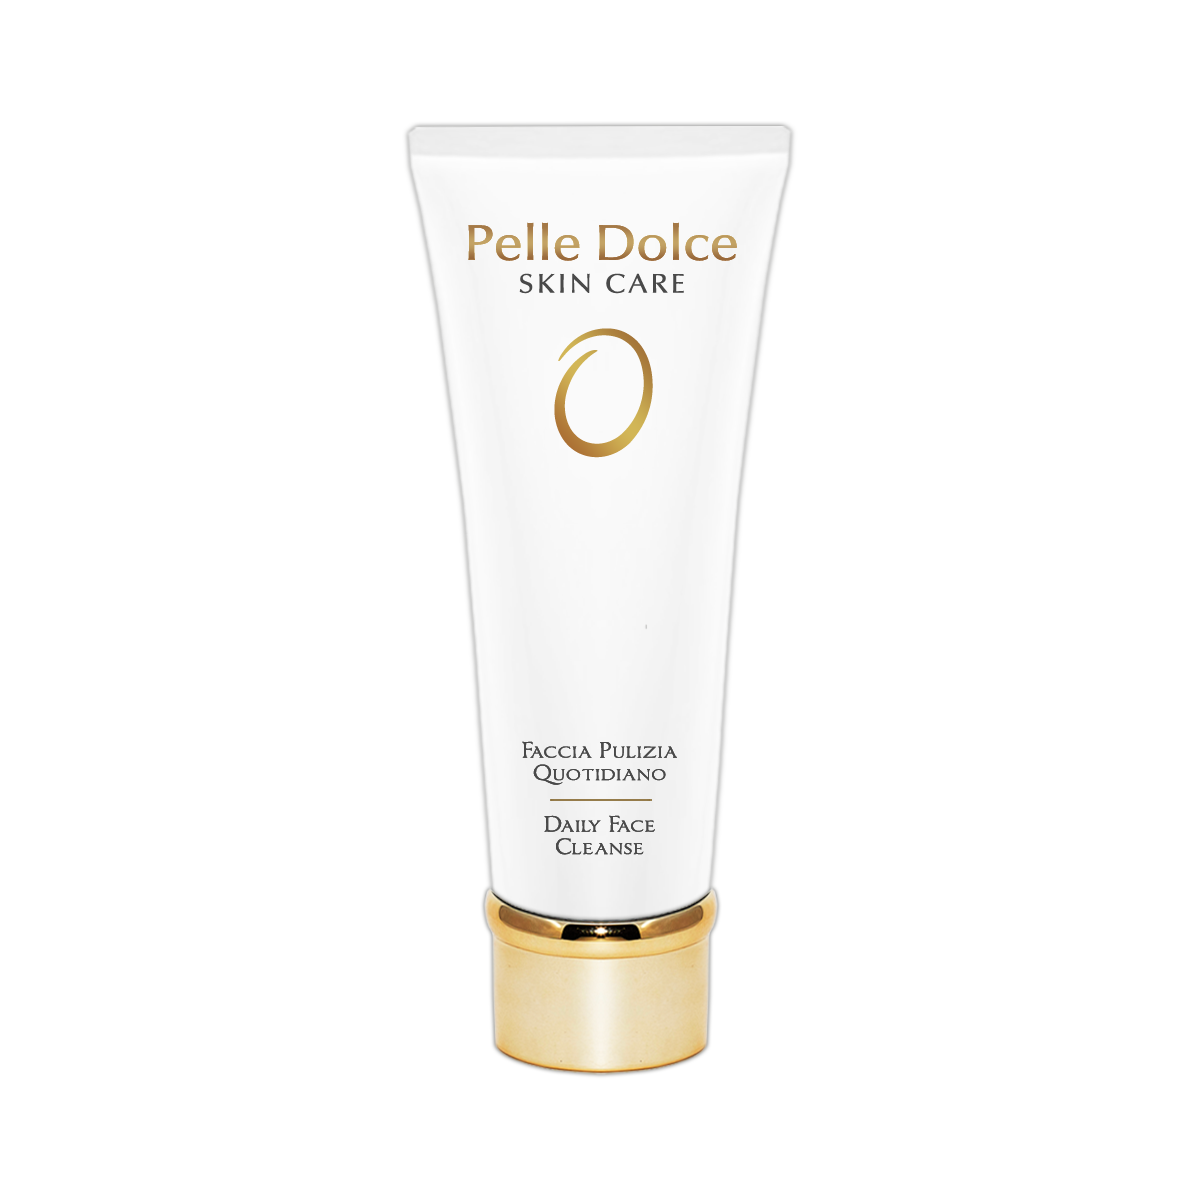 pelle-dolce-skin-care-daily-face-cleanse